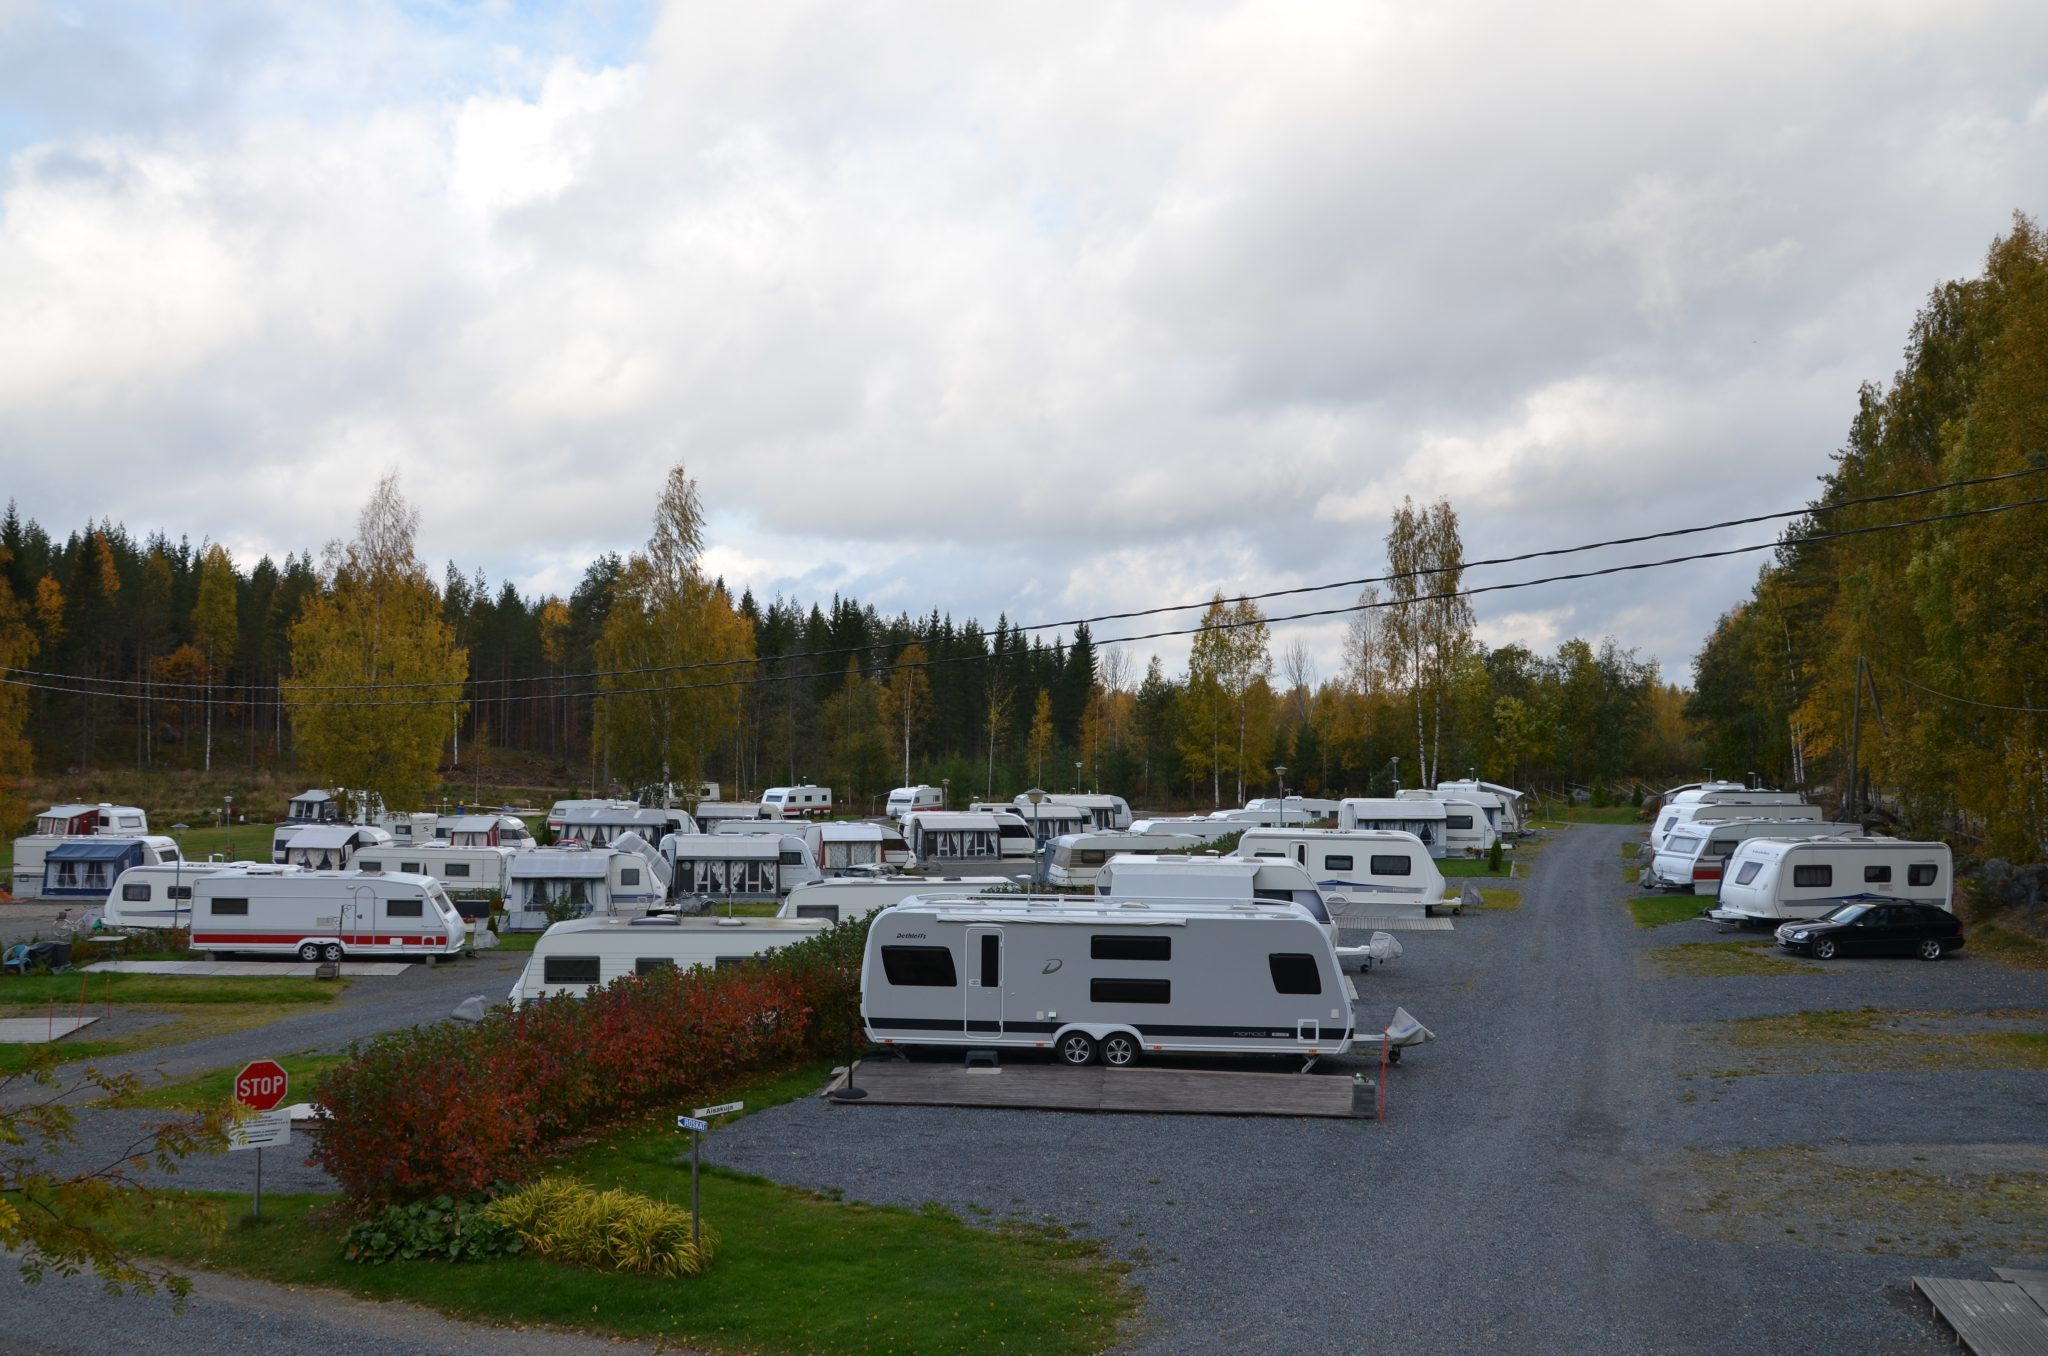 Row of caravans in Etuniemi